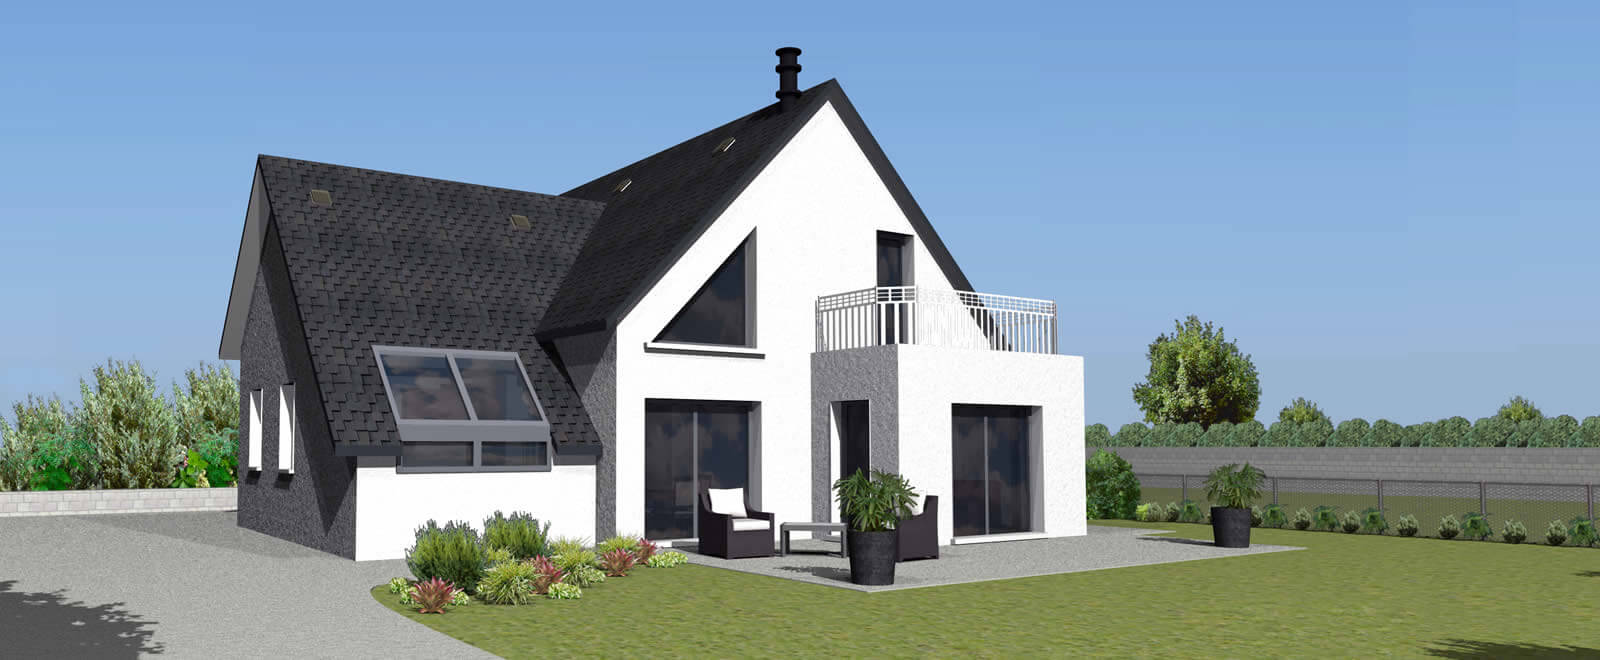 3d Home Architect 3d Official Site Architect Software For 3d Home Design